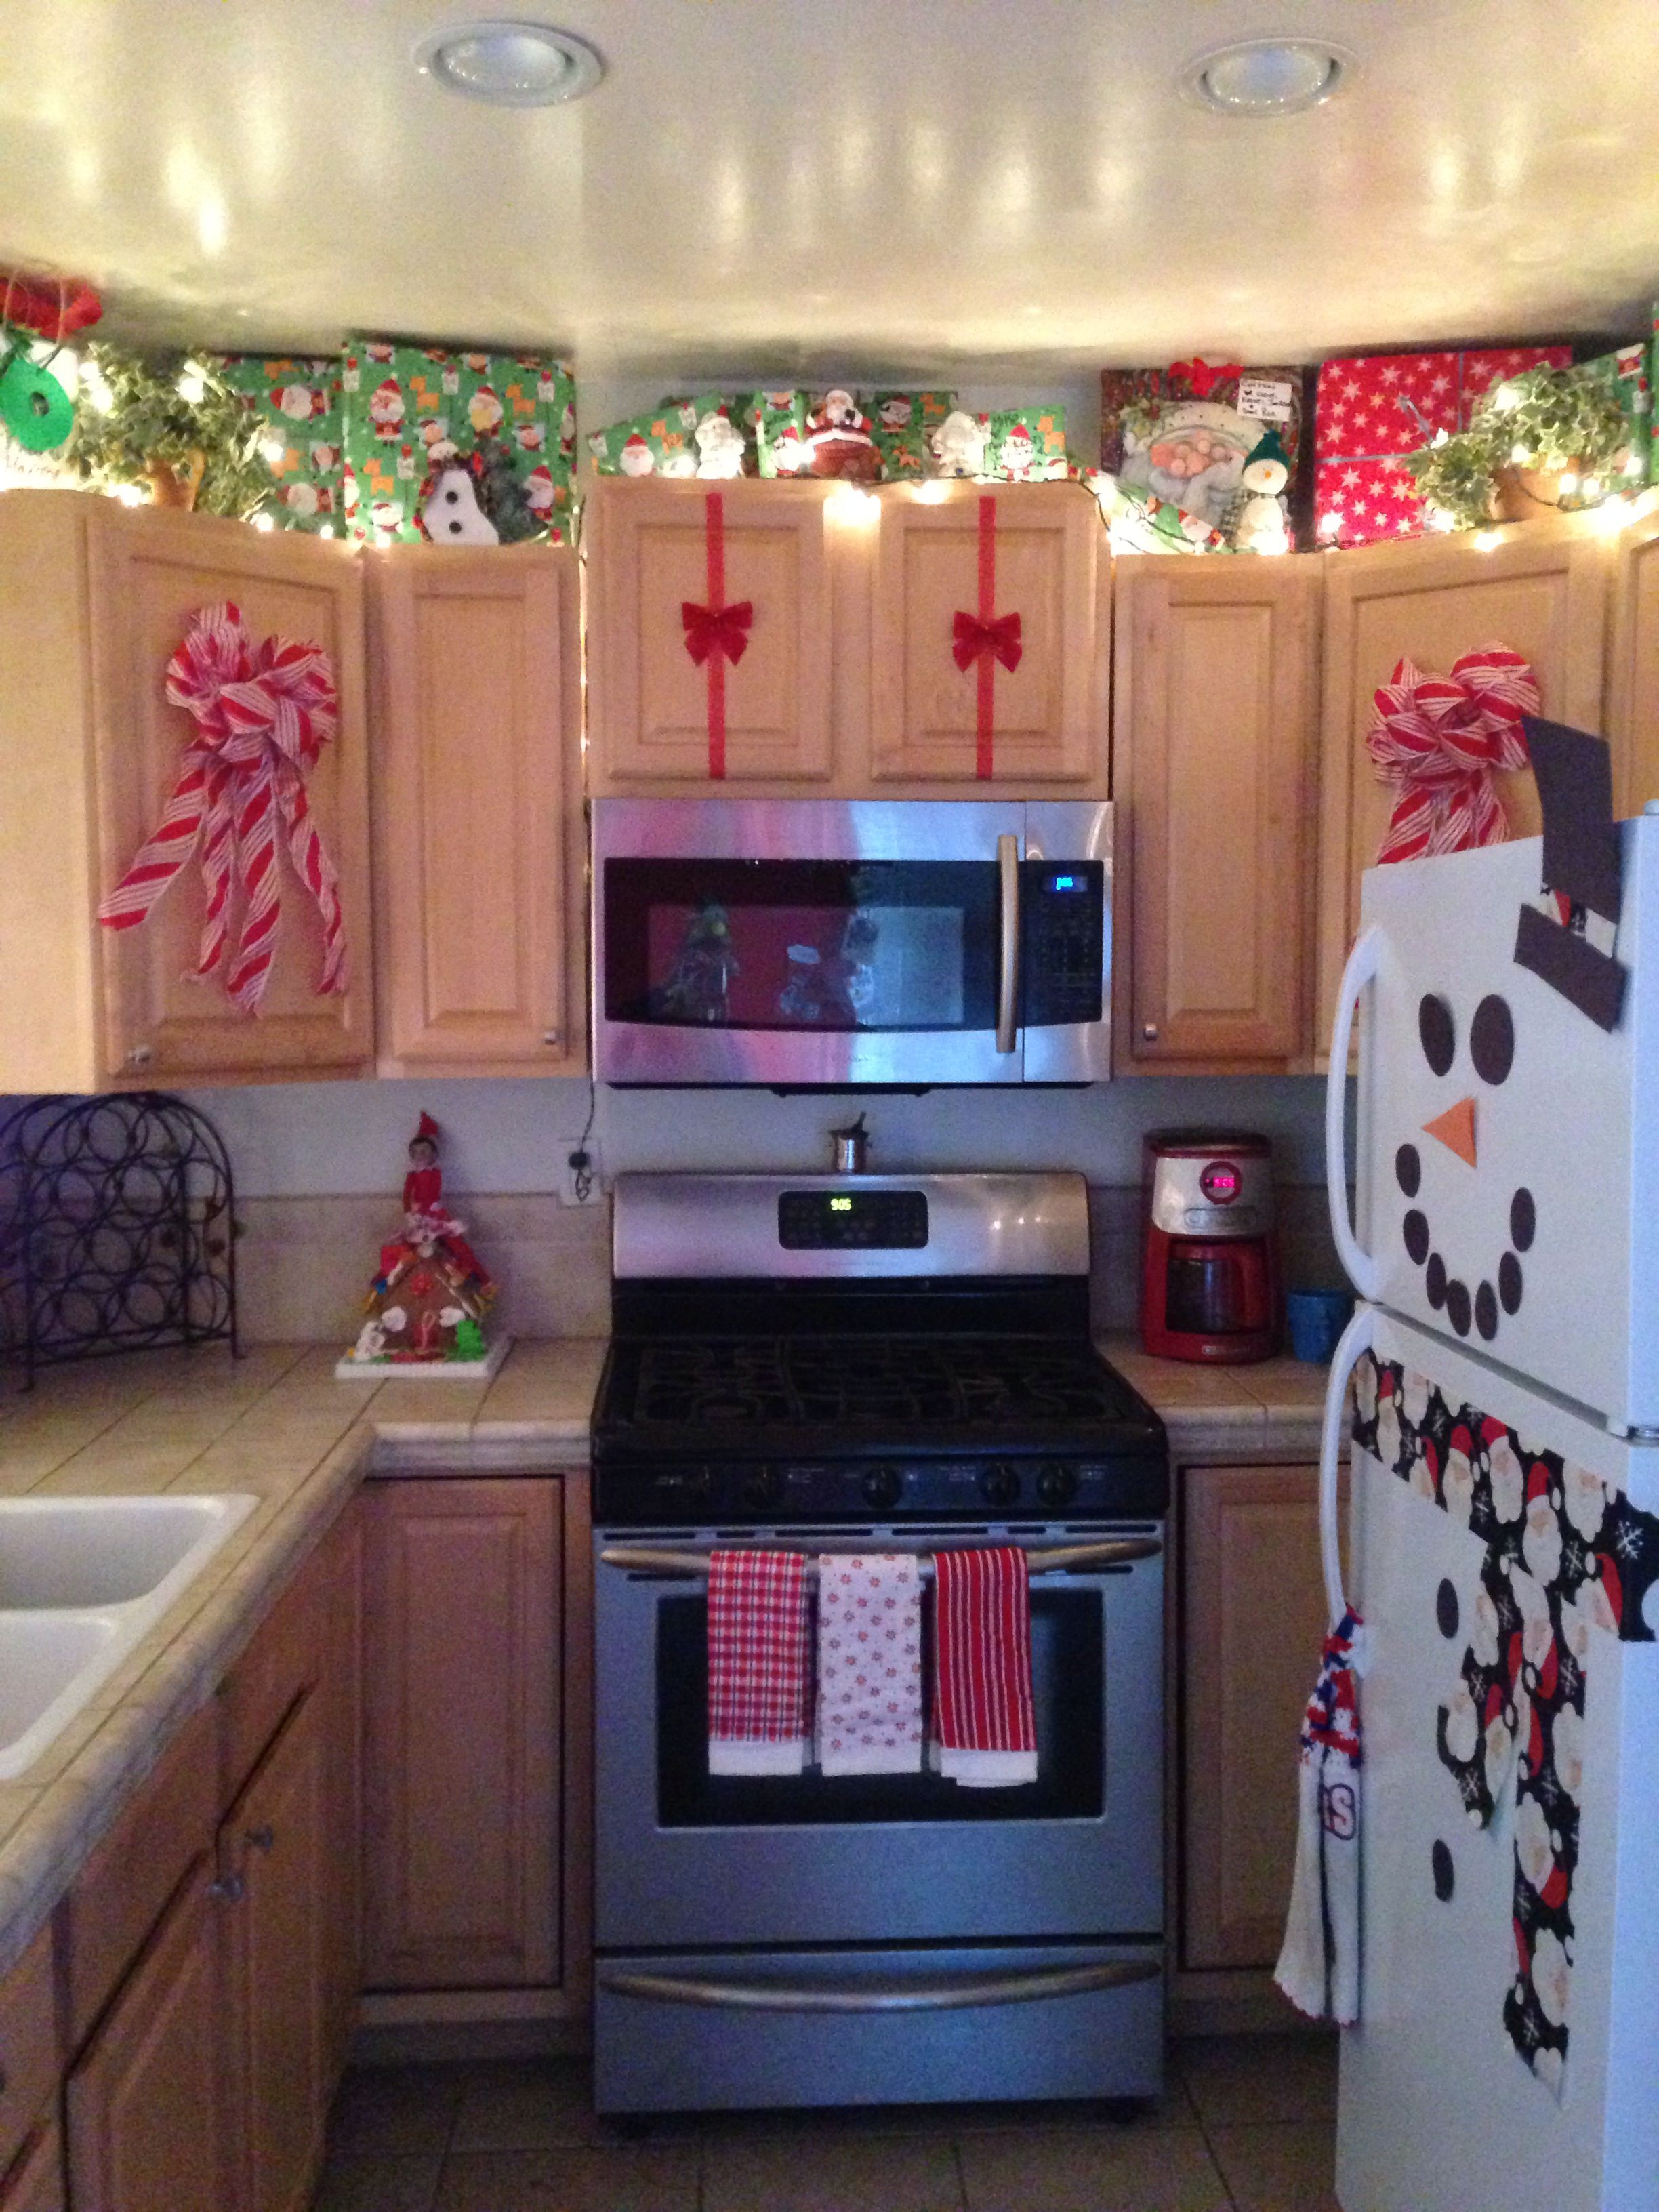 christmas kitchen christmas kitchen decor christmas decor diy christmas apartment on kitchen cabinets xmas decor id=90814